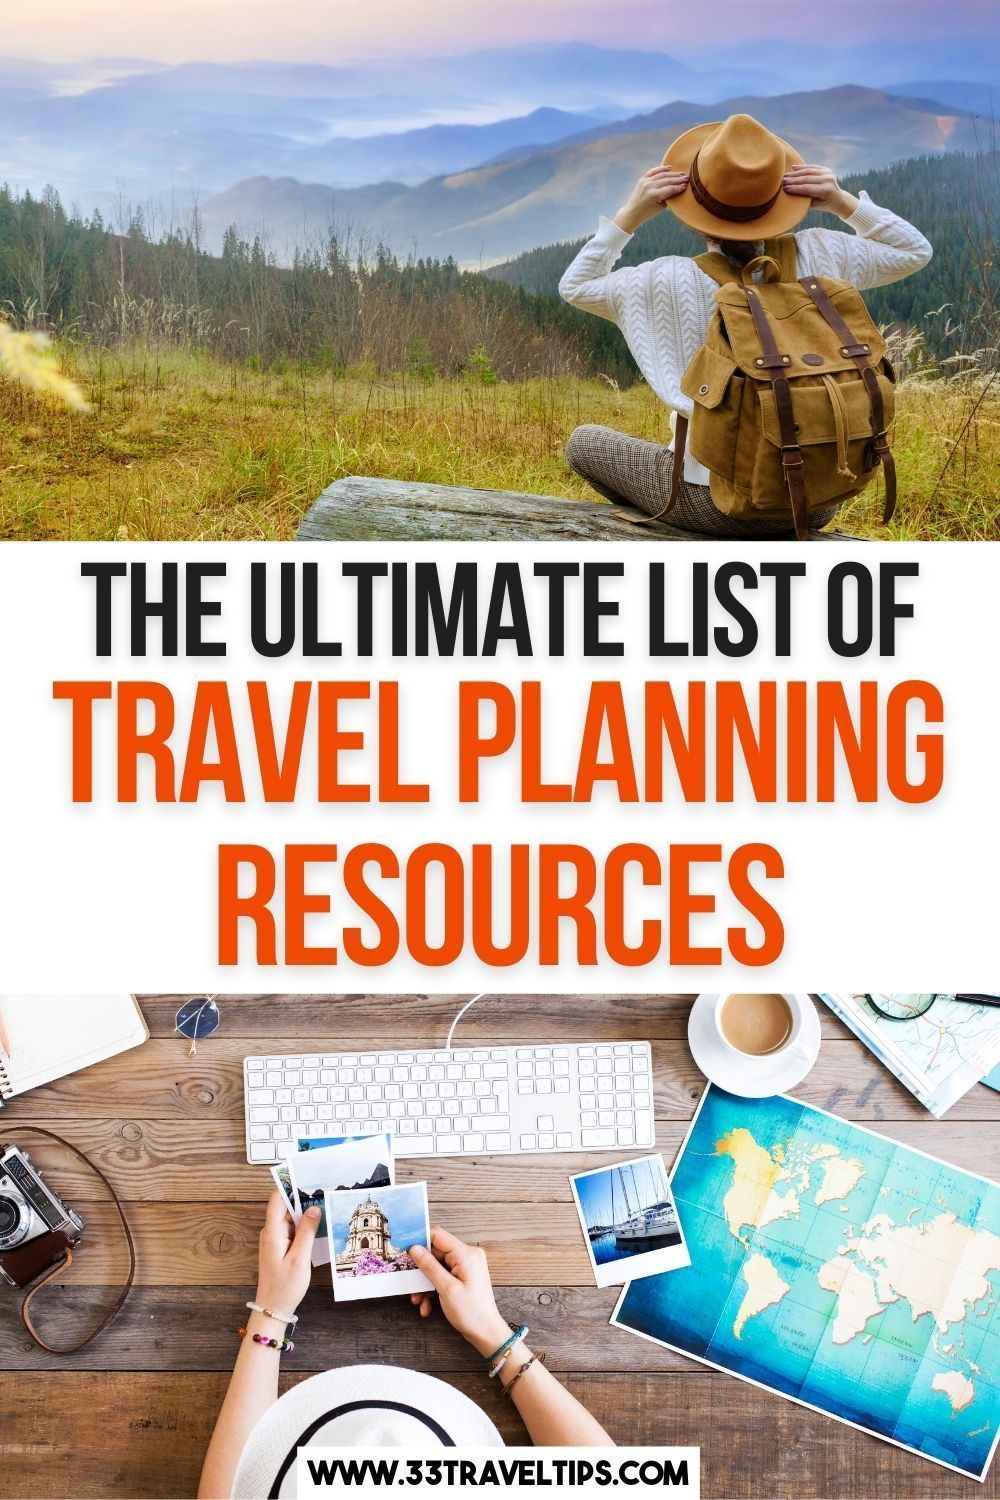 The Ultimate List Of Travel Planning Resources Trip Planning Travel Resources Travel Fun